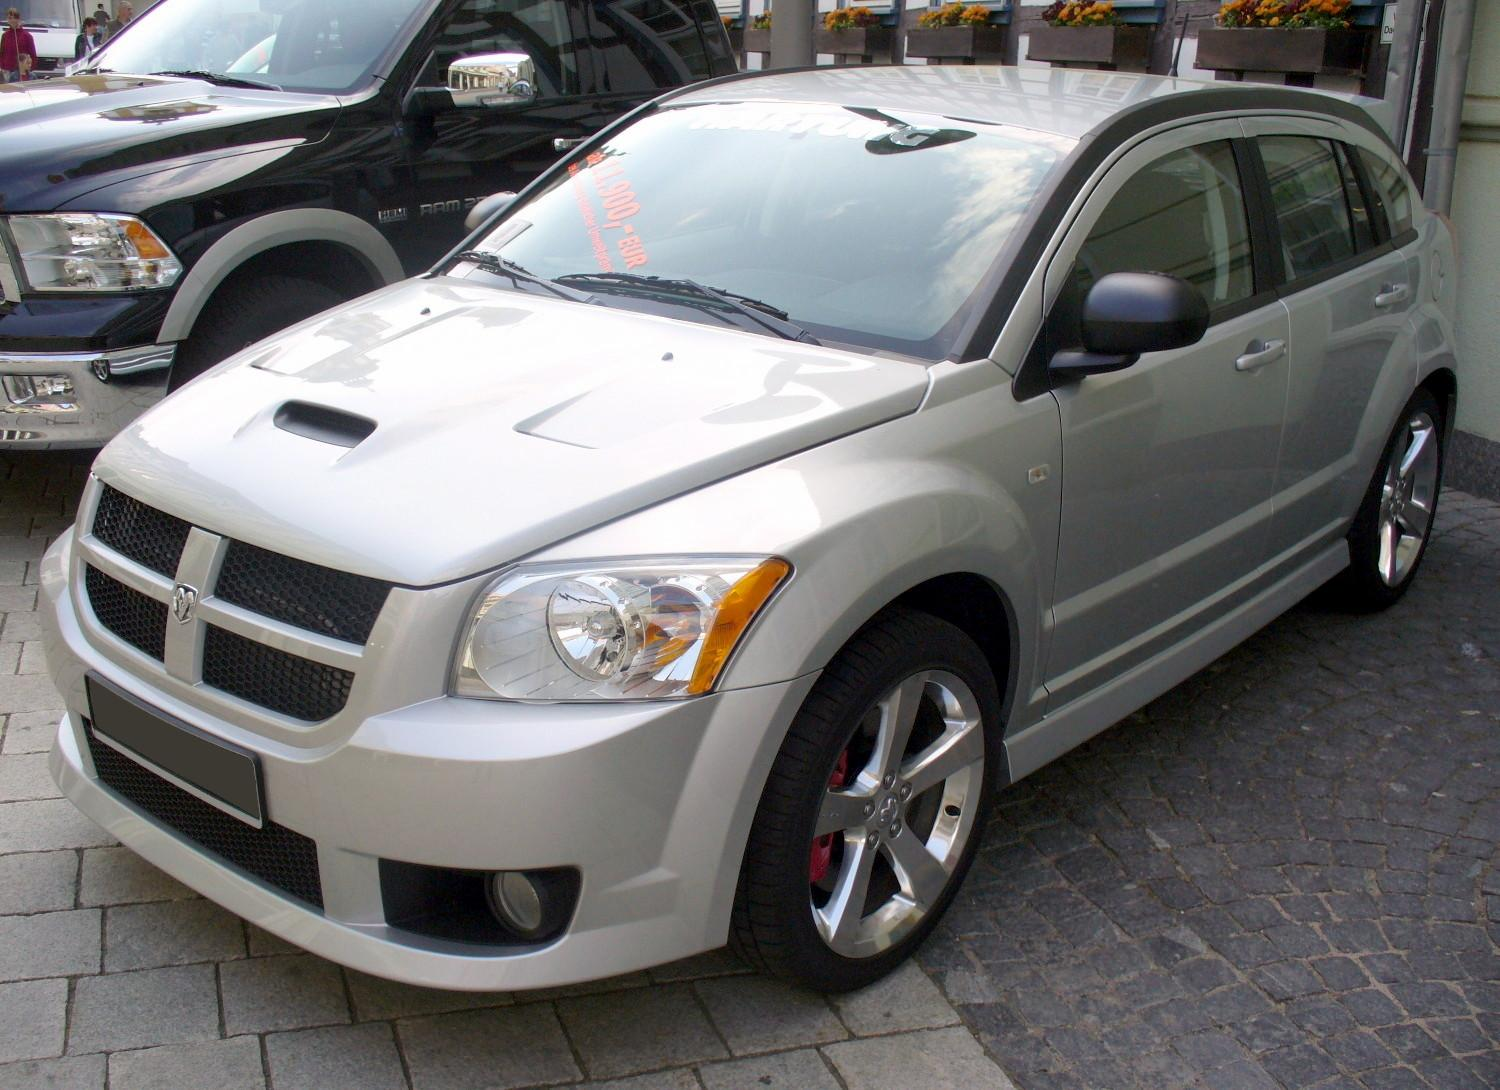 File:Dodge Caliber SRT4.JPG - Wikimedia Commons